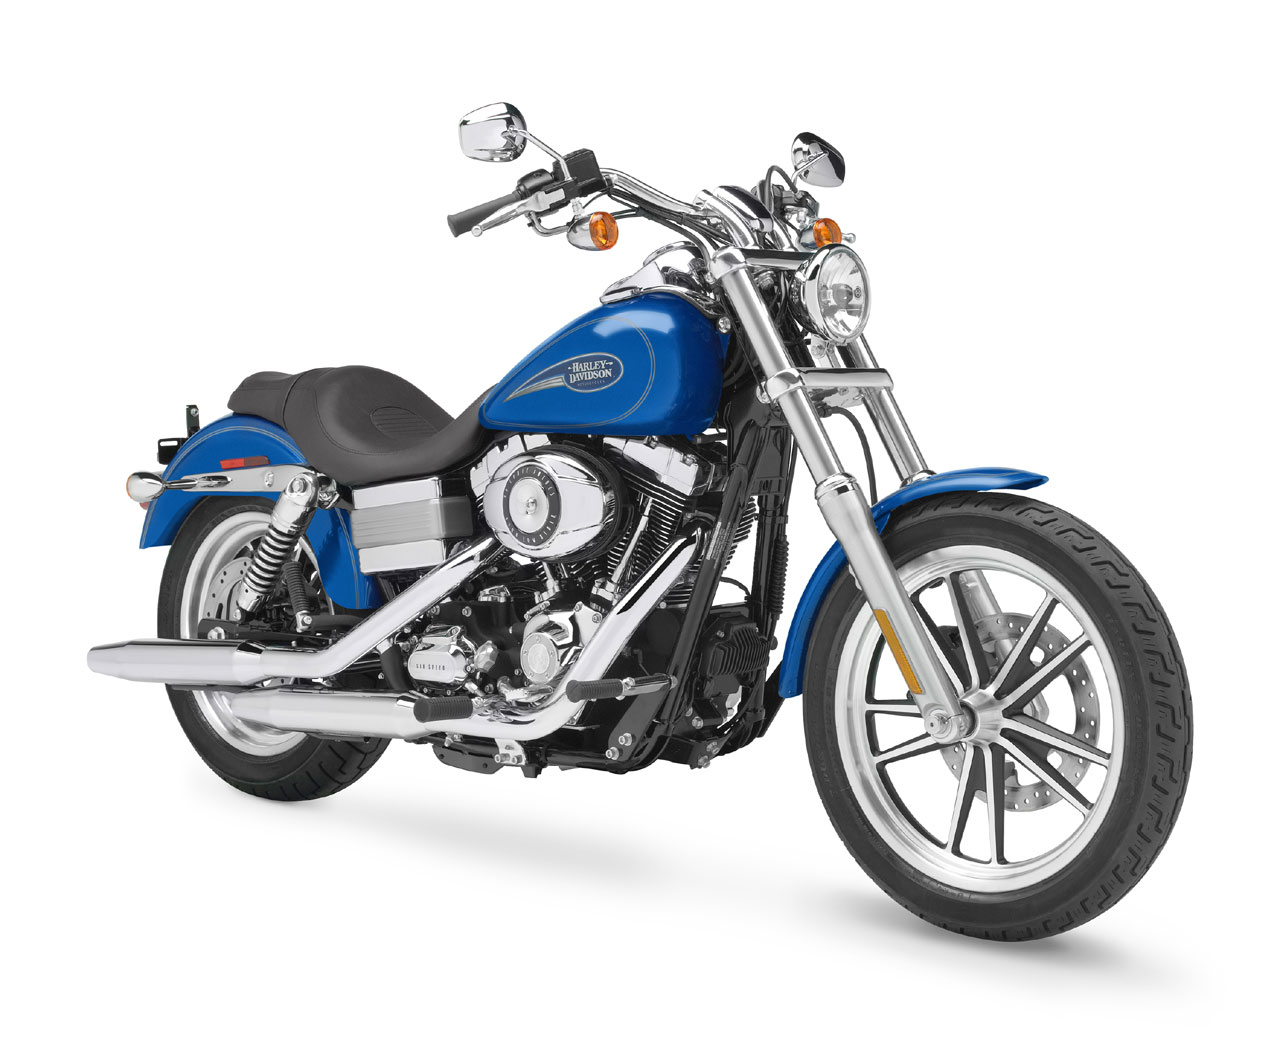 2007 Harley-Davidson FXDL Dyna Low Rider  Reviews